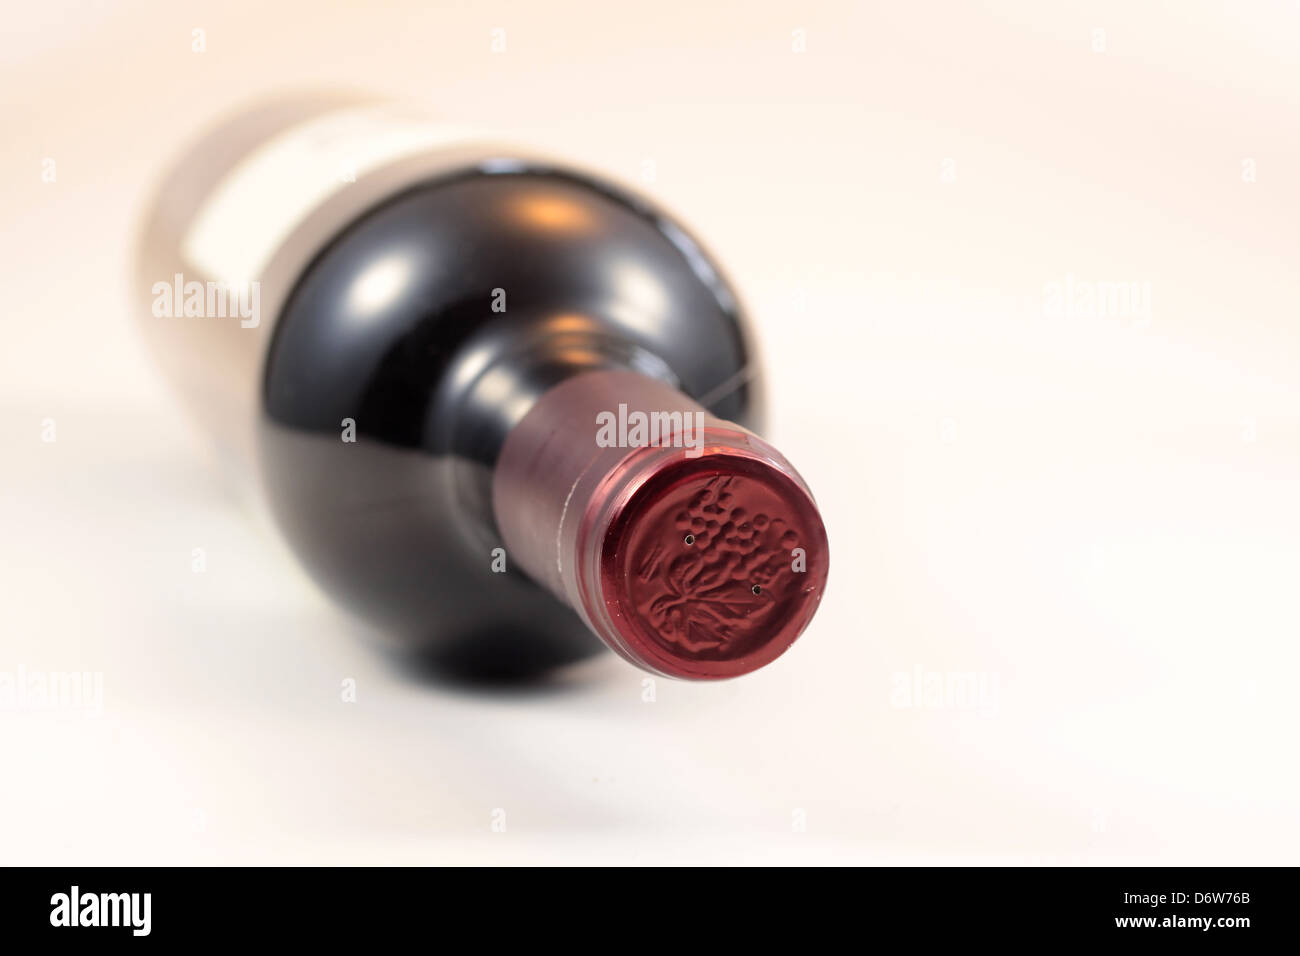 Close up view of isolated red wine bottle - Stock Image